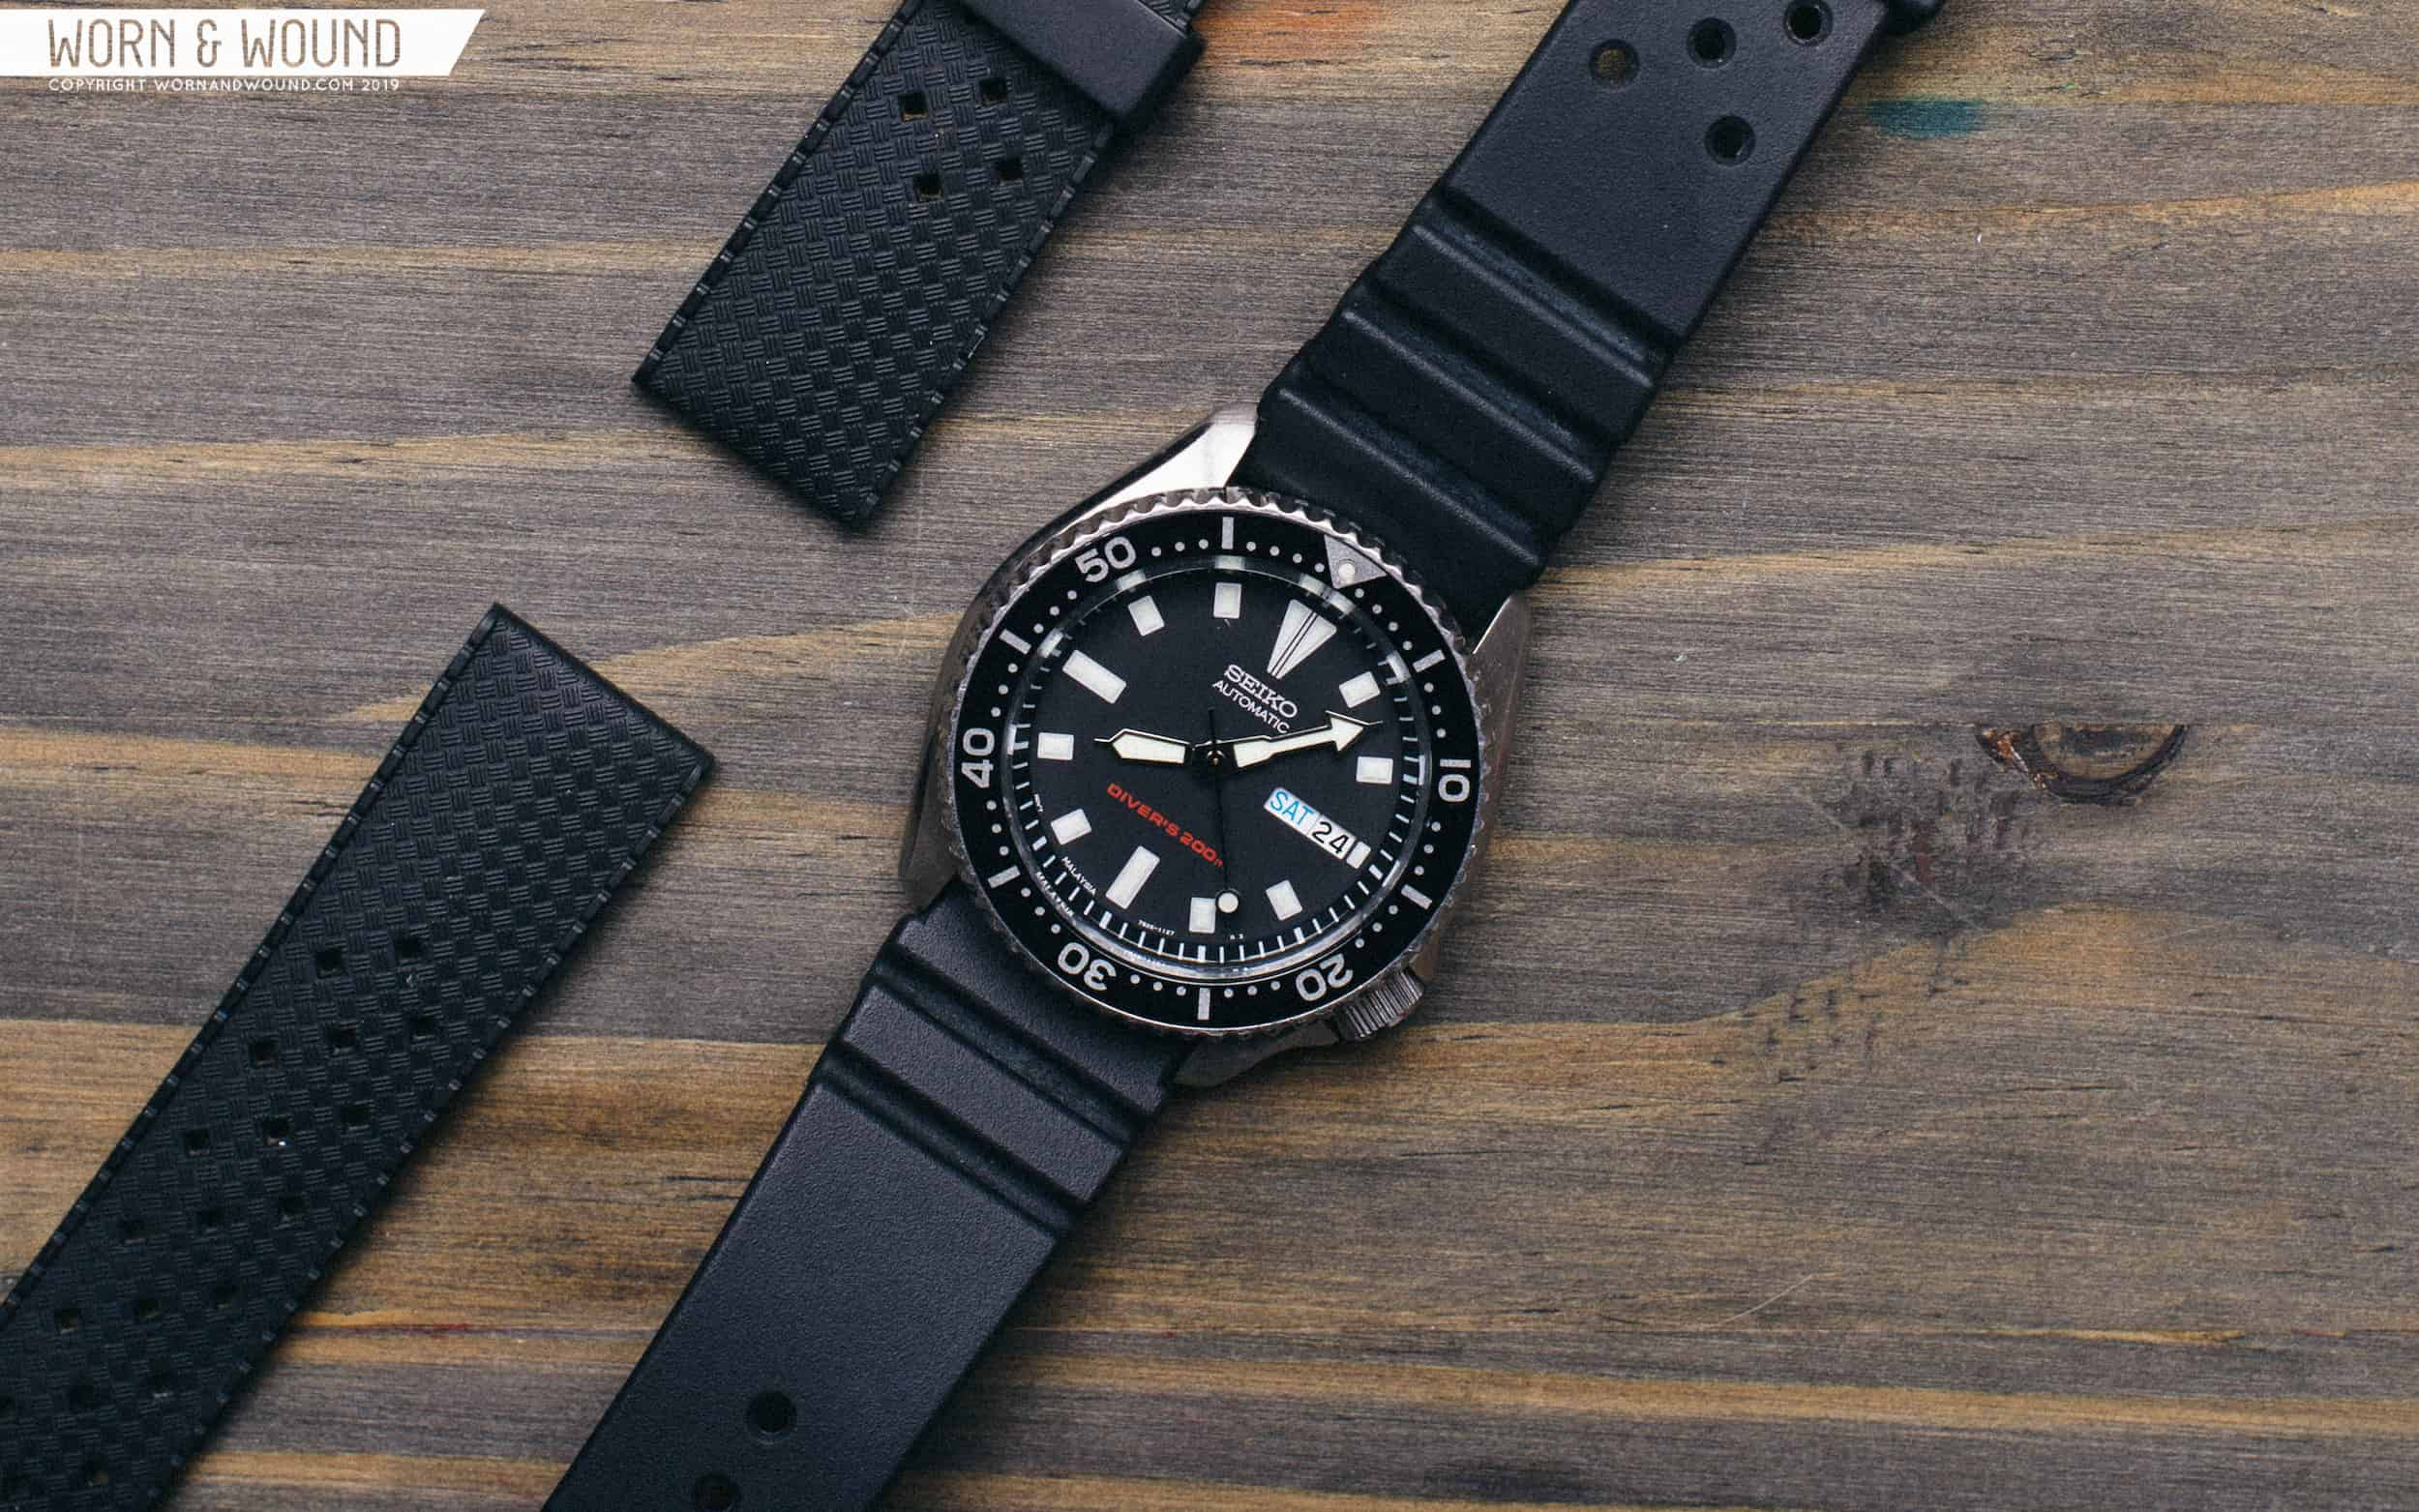 Review: Seiko SKX173, and the Small Mods That Made It My Own - Worn